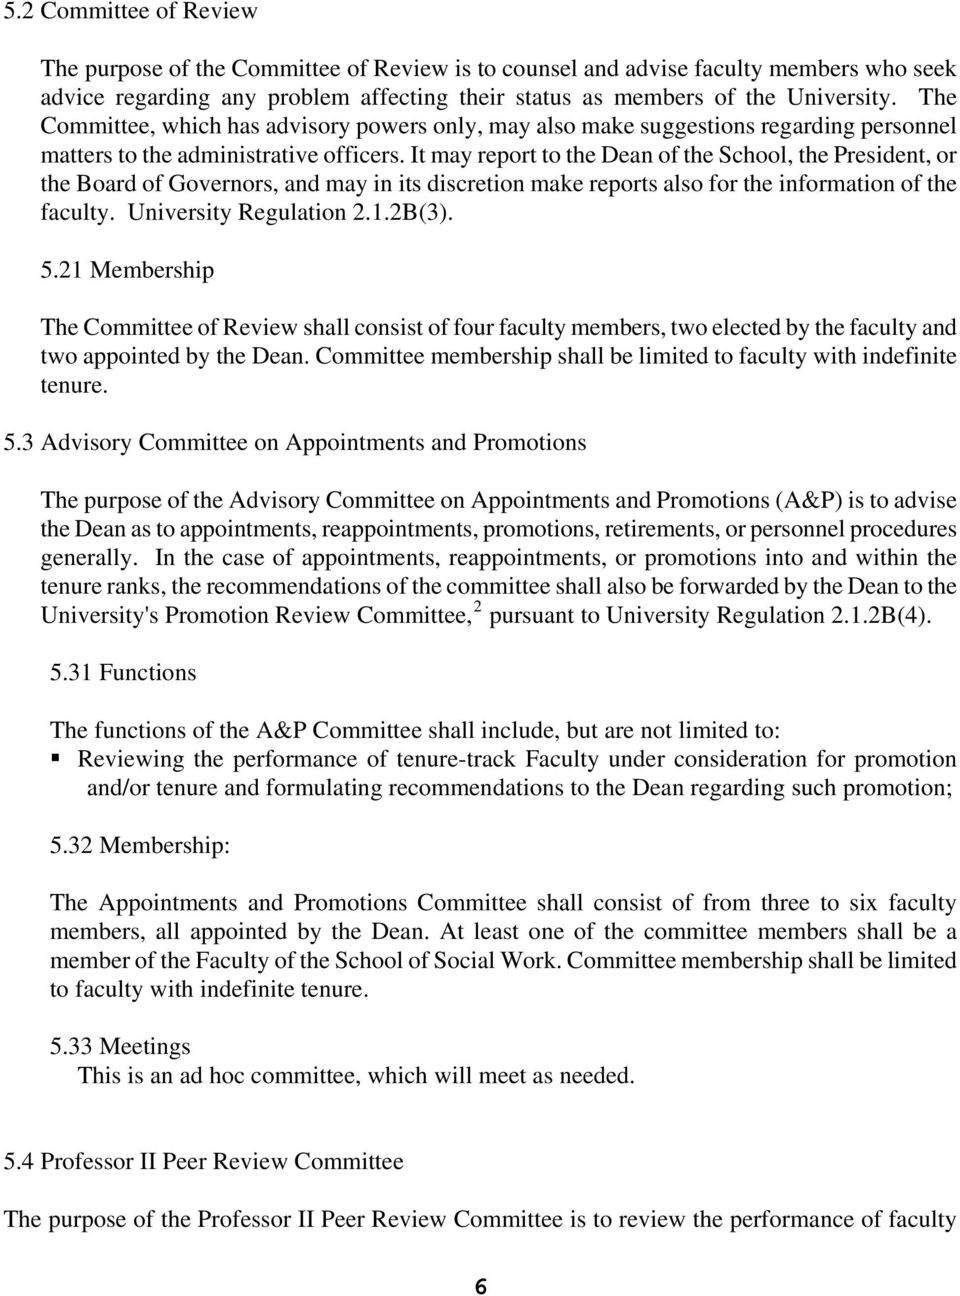 It may report to the Dean of the School, the President, or the Board of Governors, and may in its discretion make reports also for the information of the faculty. University Regulation 2.1.2B(3). 5.